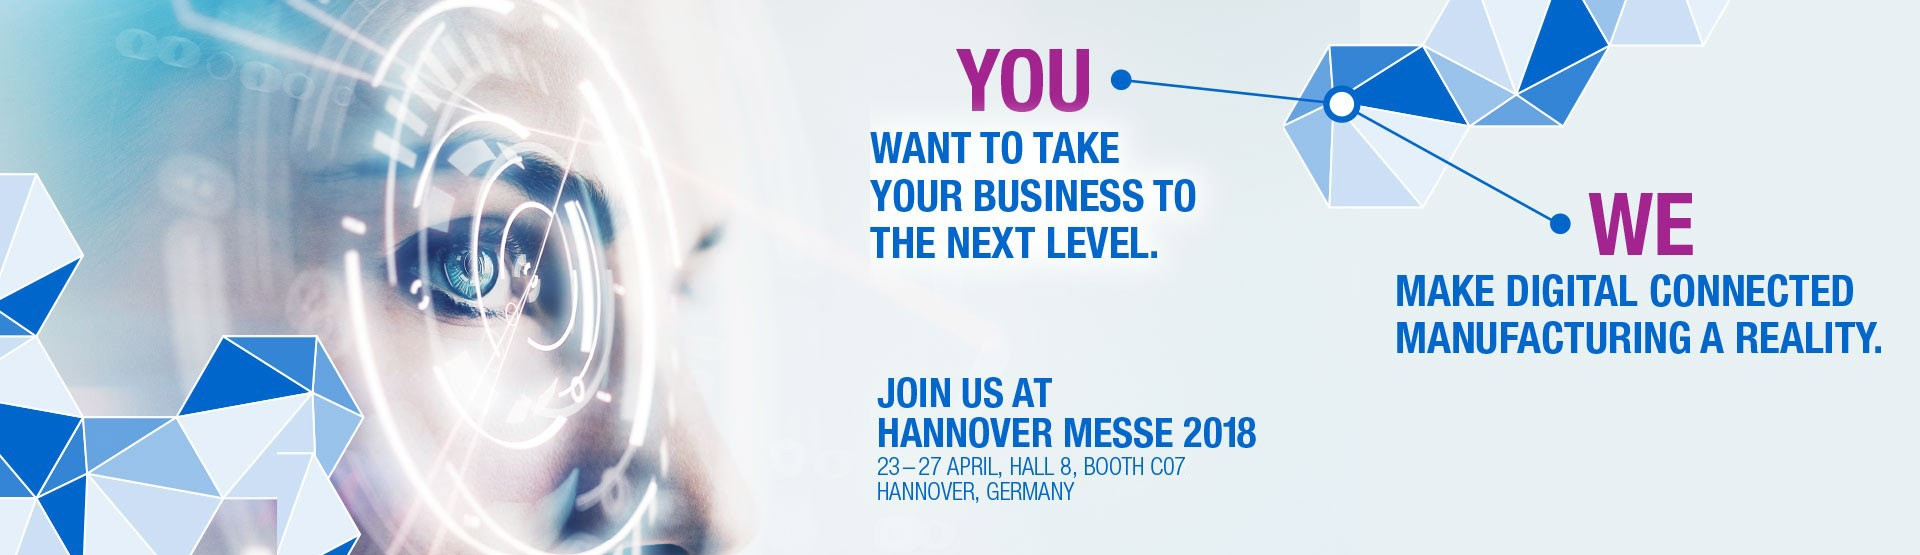 1920_banner_website-visual-hannover-messe-2018-lang